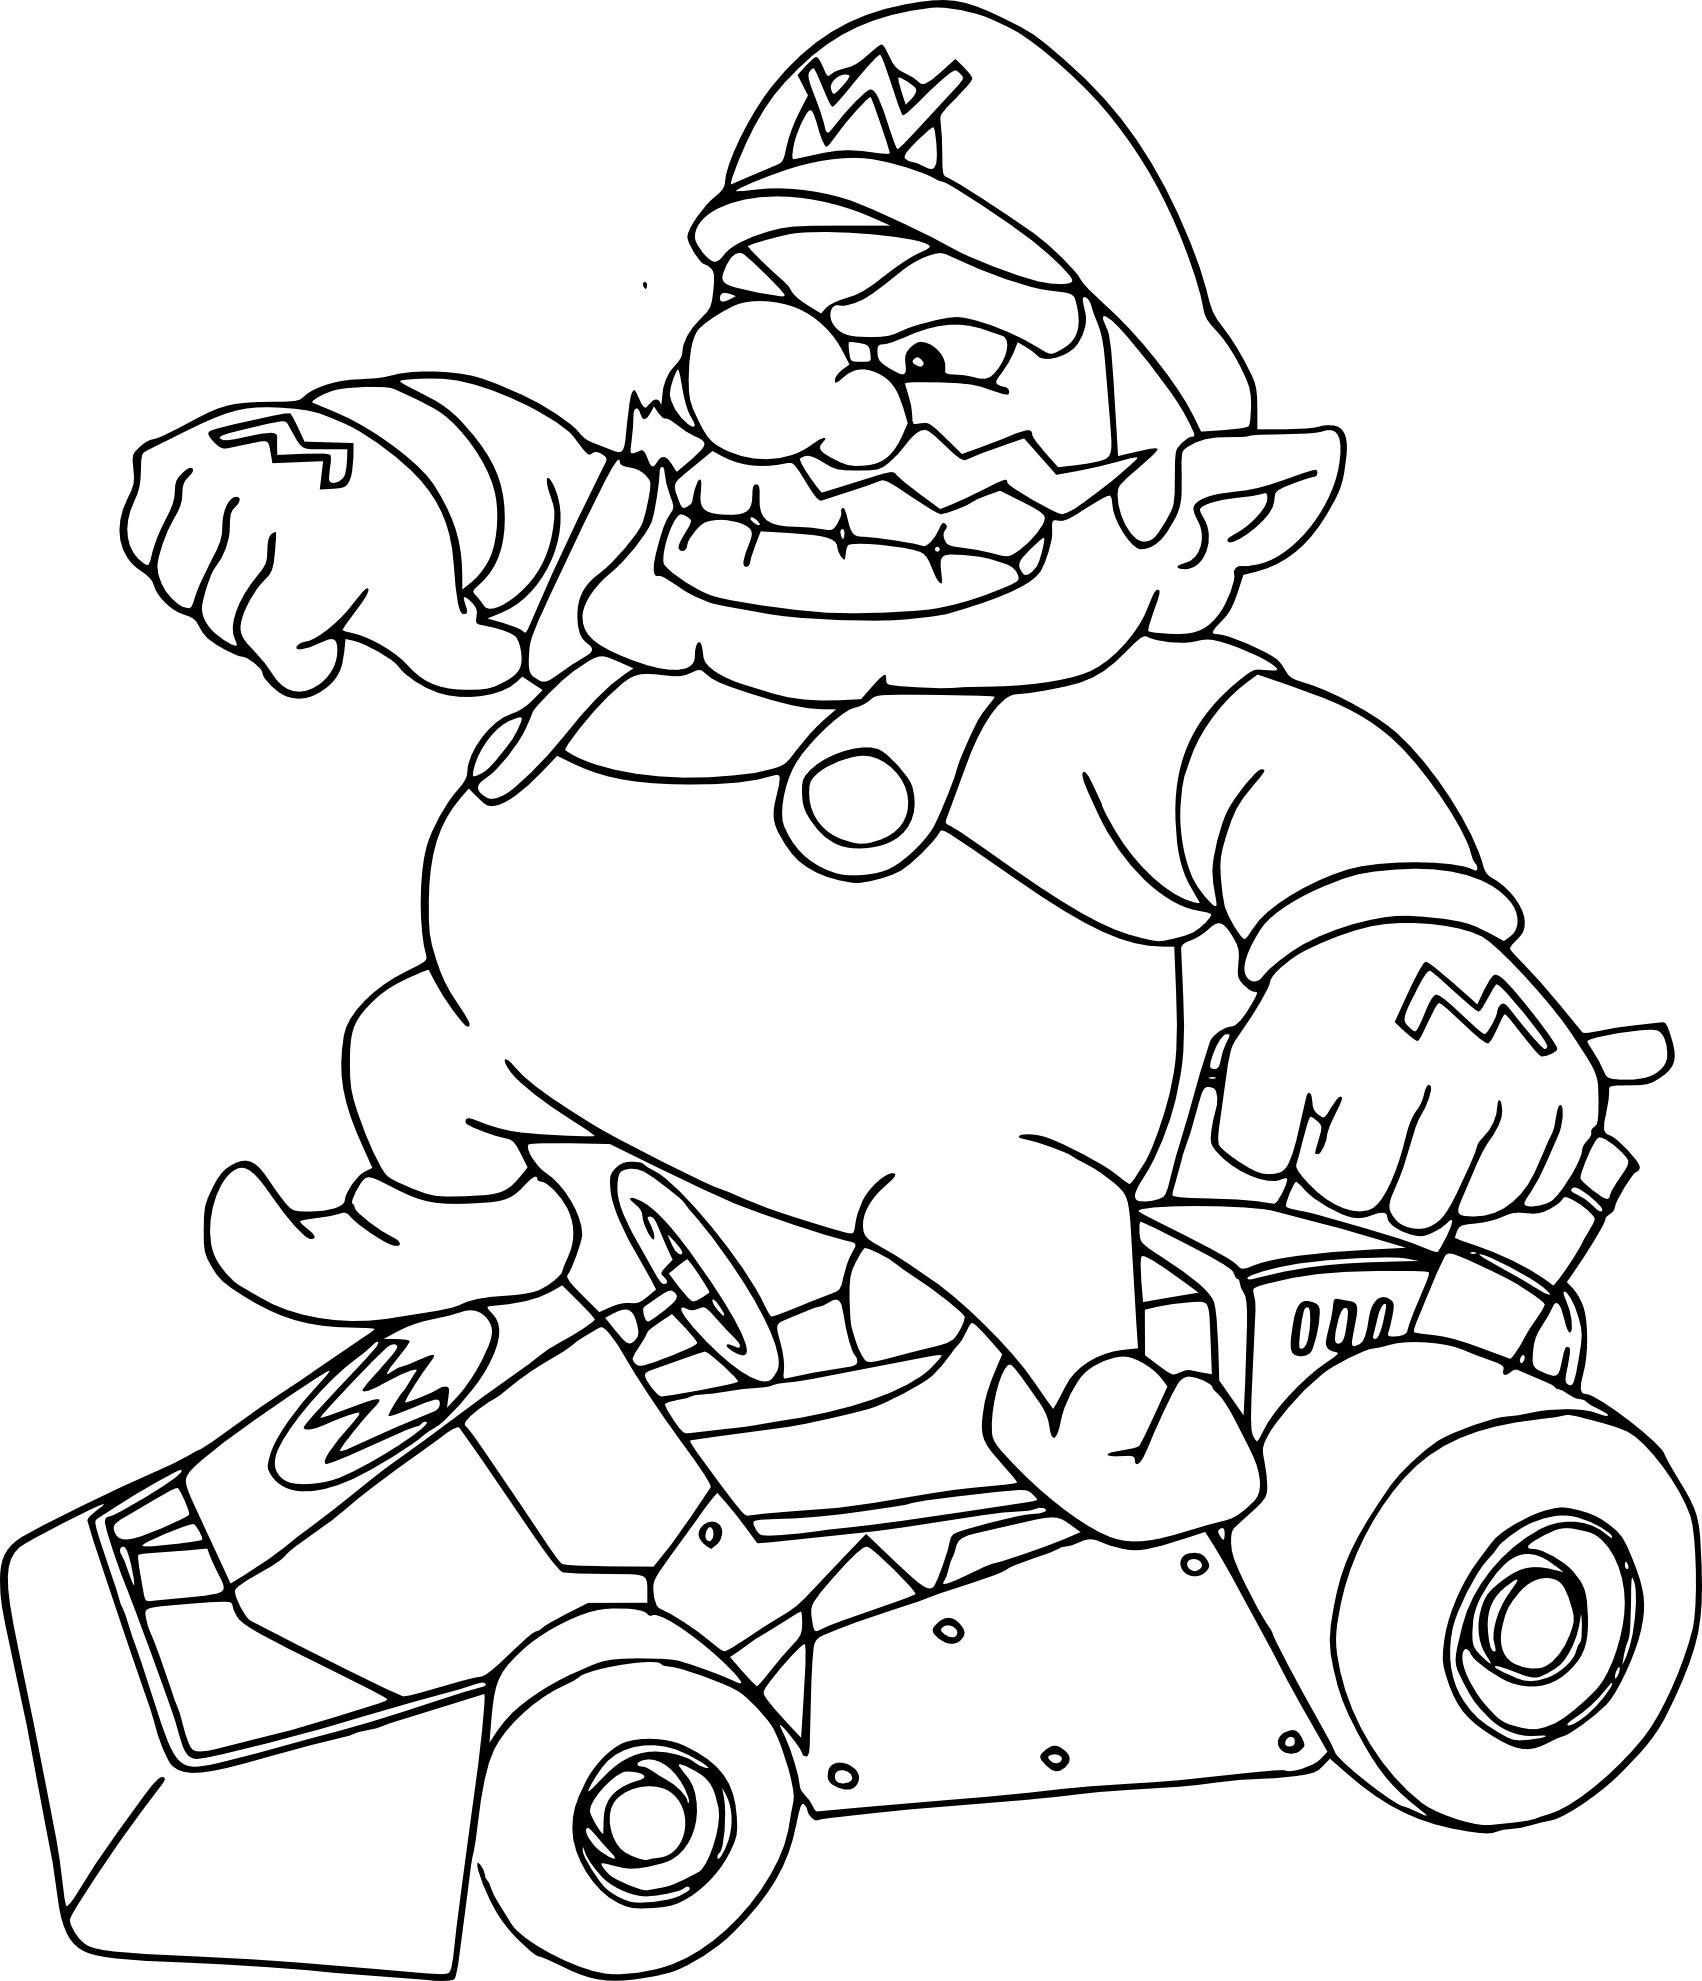 Coloring Pages Mario Kart Wii